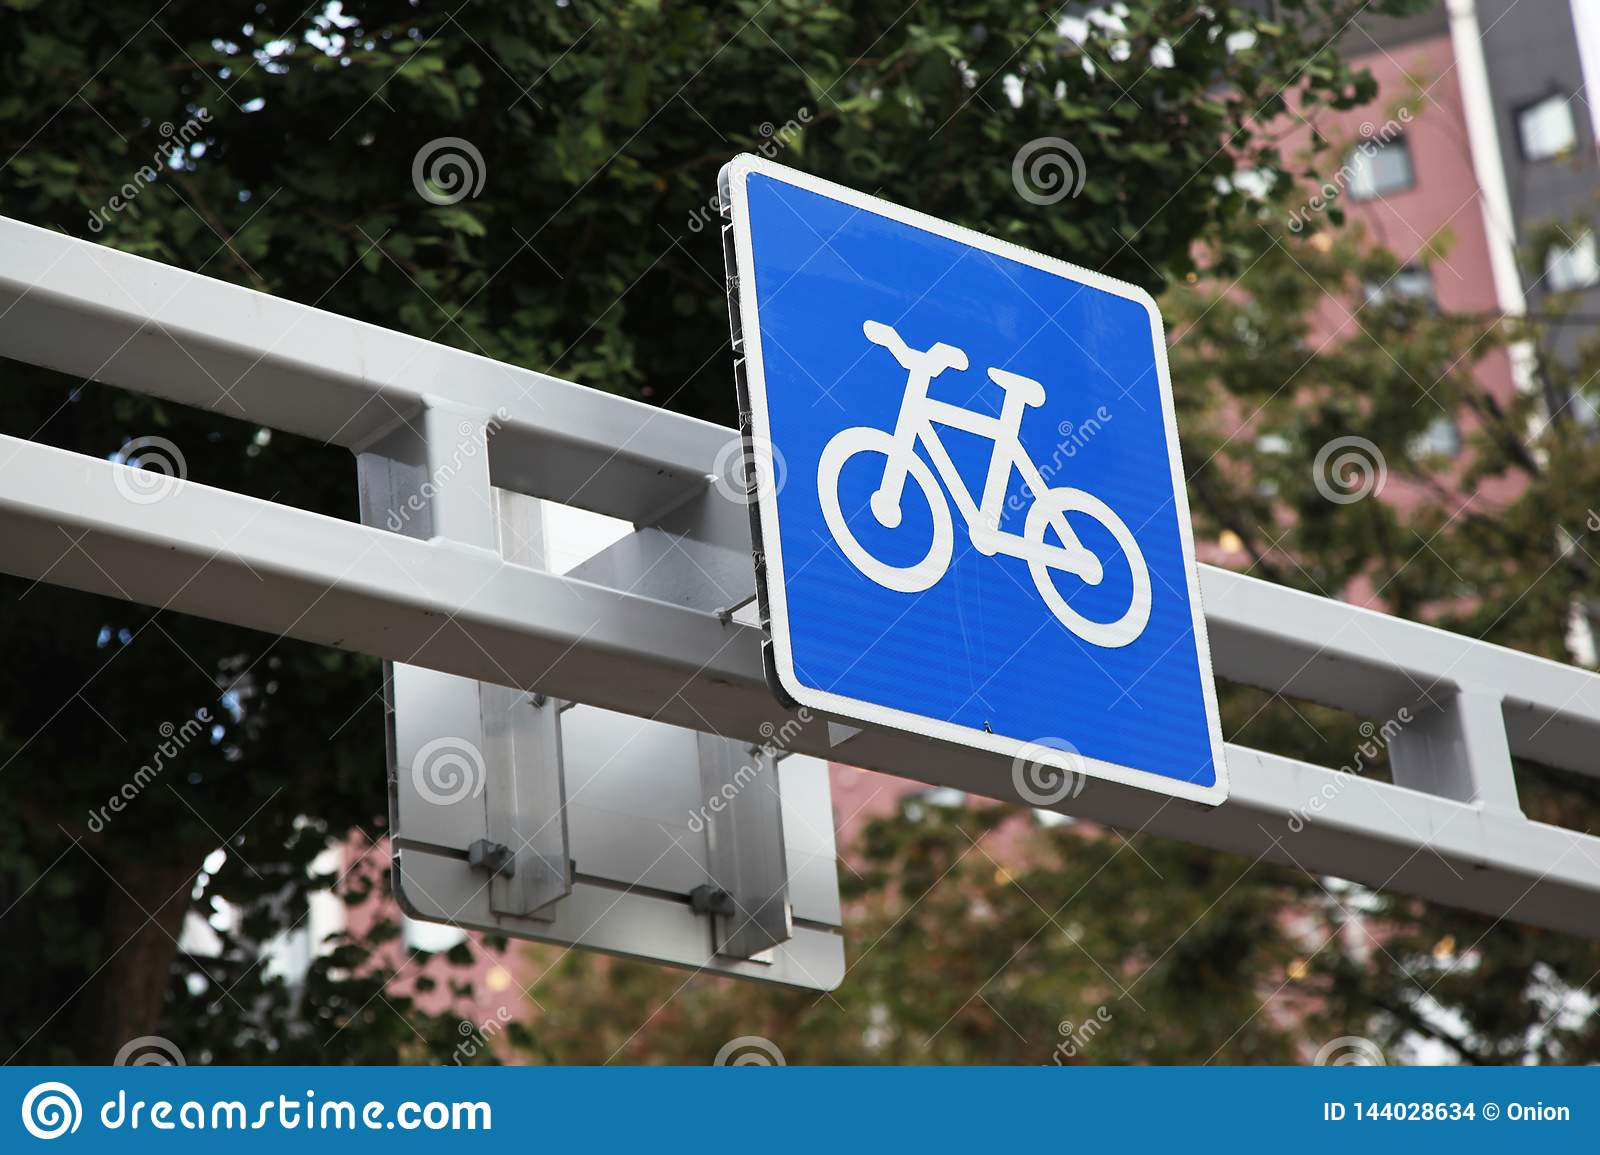 Bicycle path sign in blue found in Japan